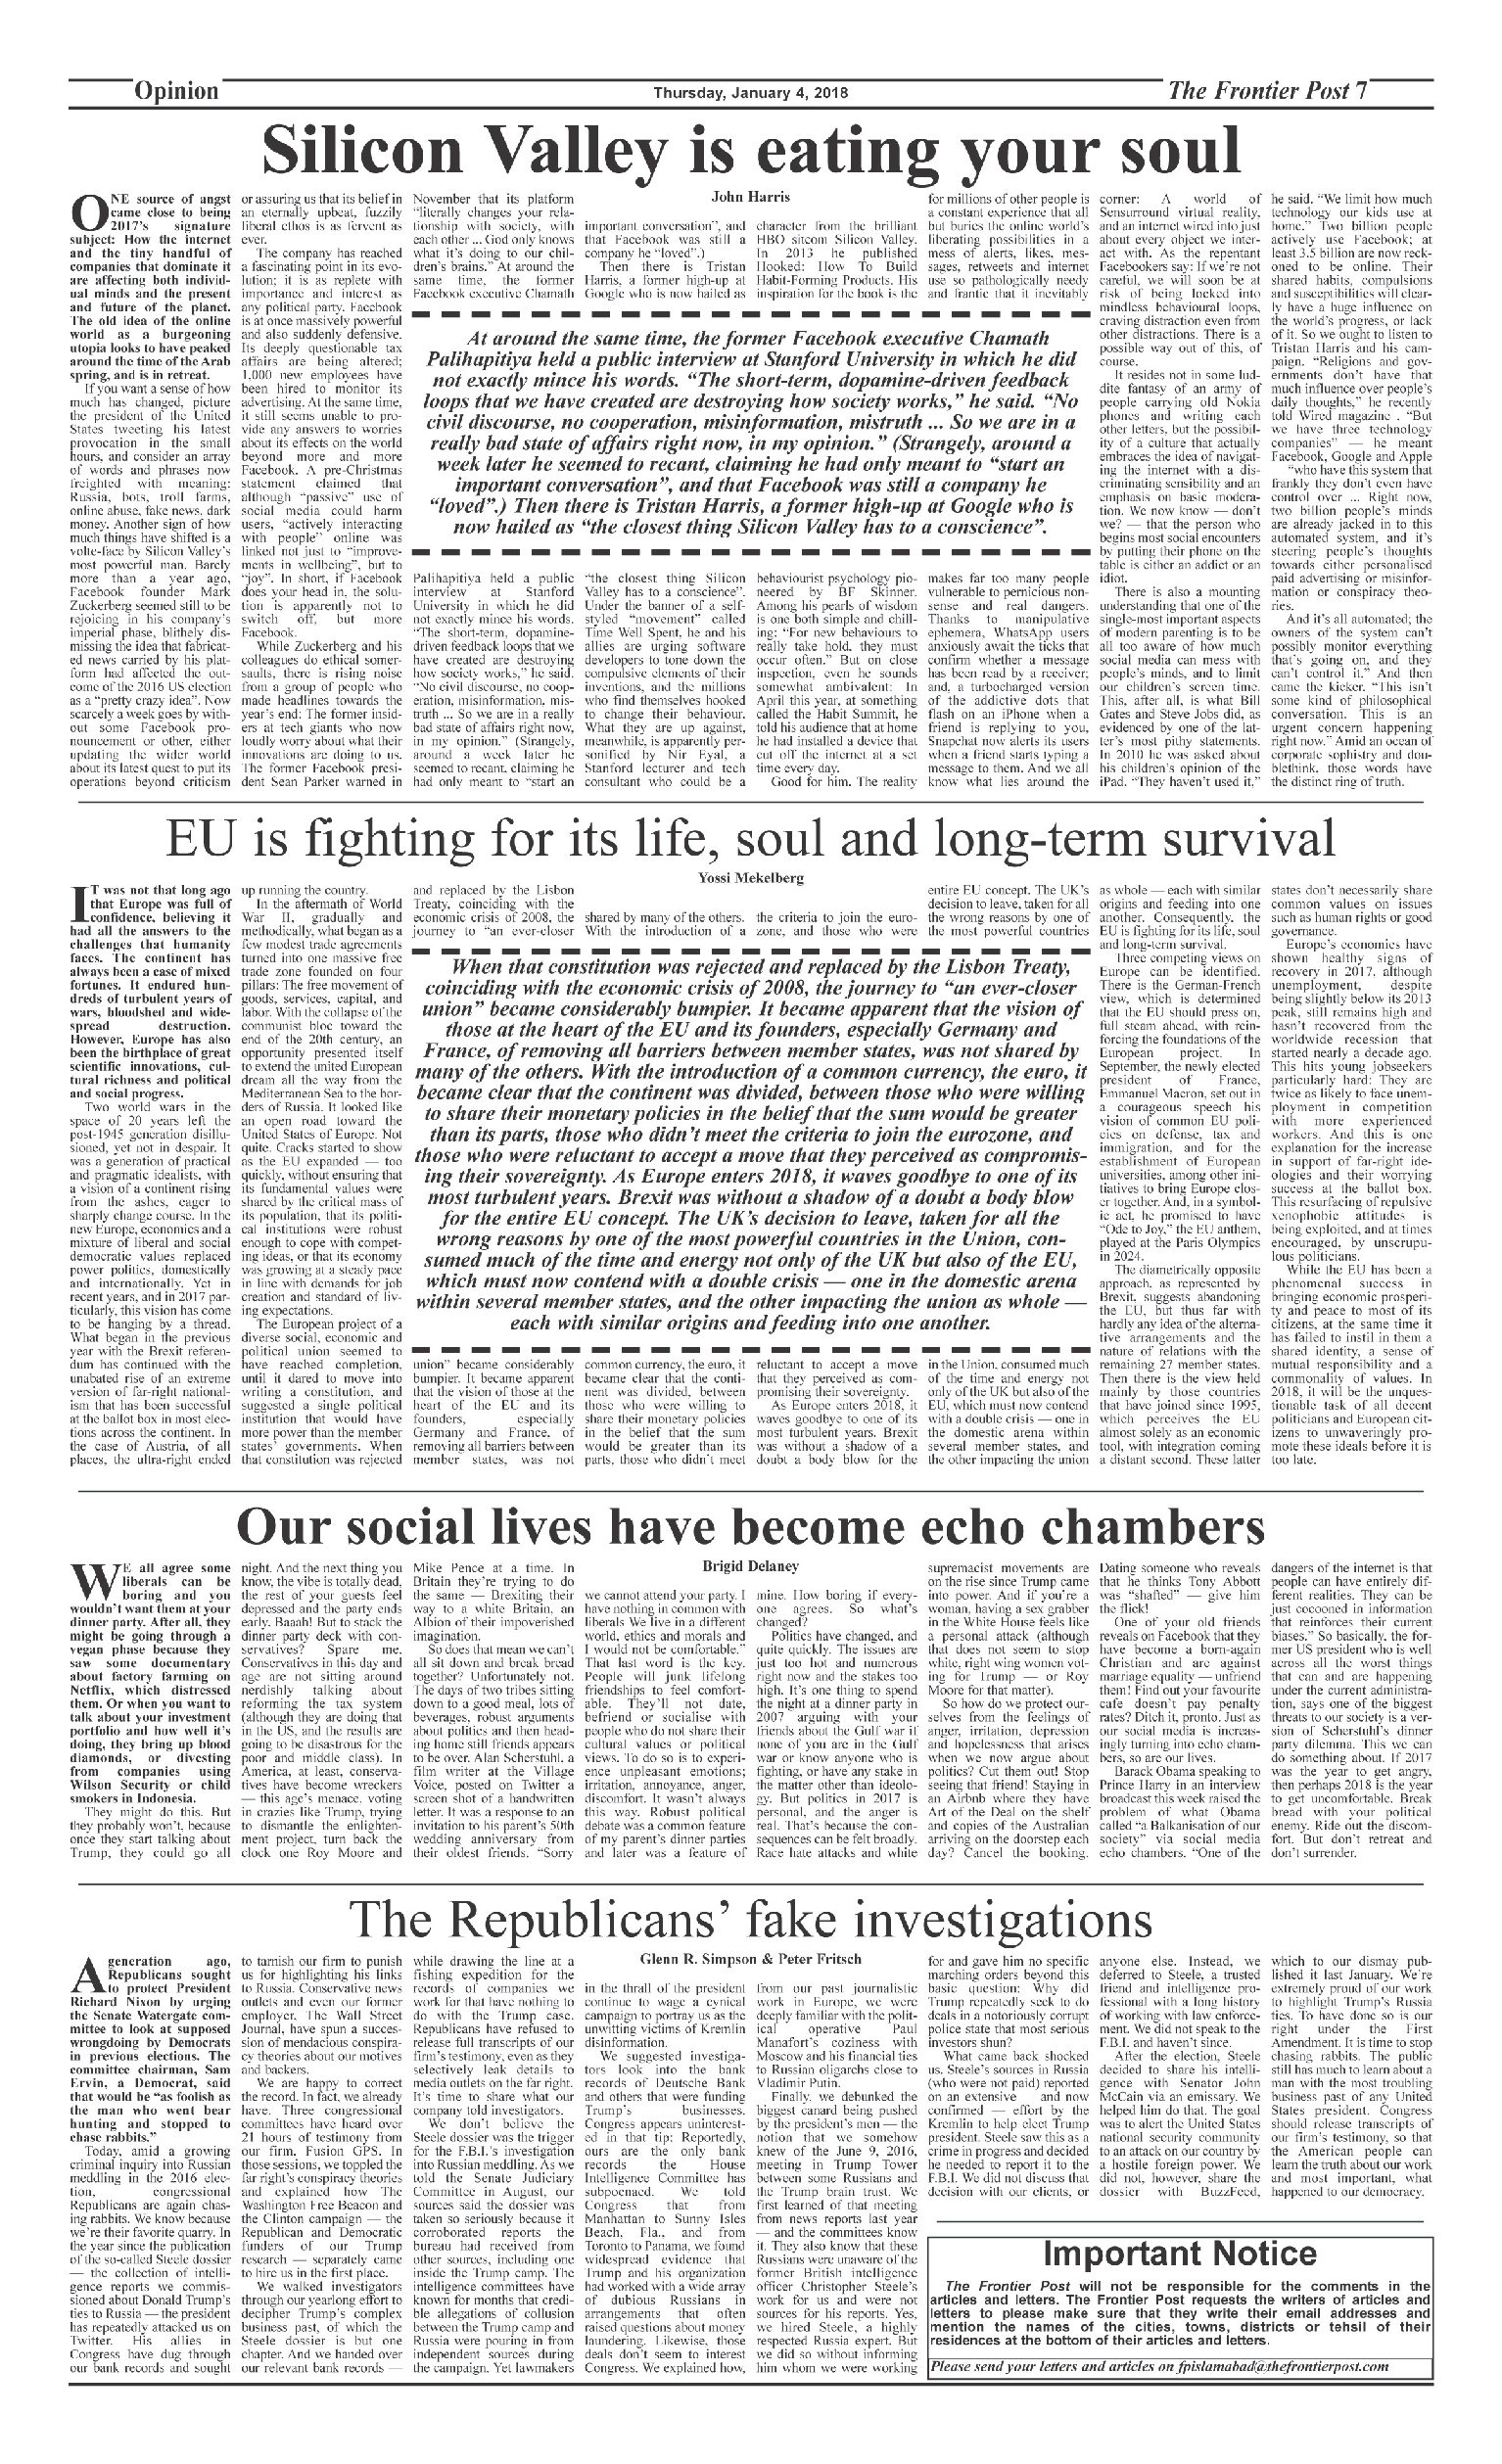 Opinion Page 4-1